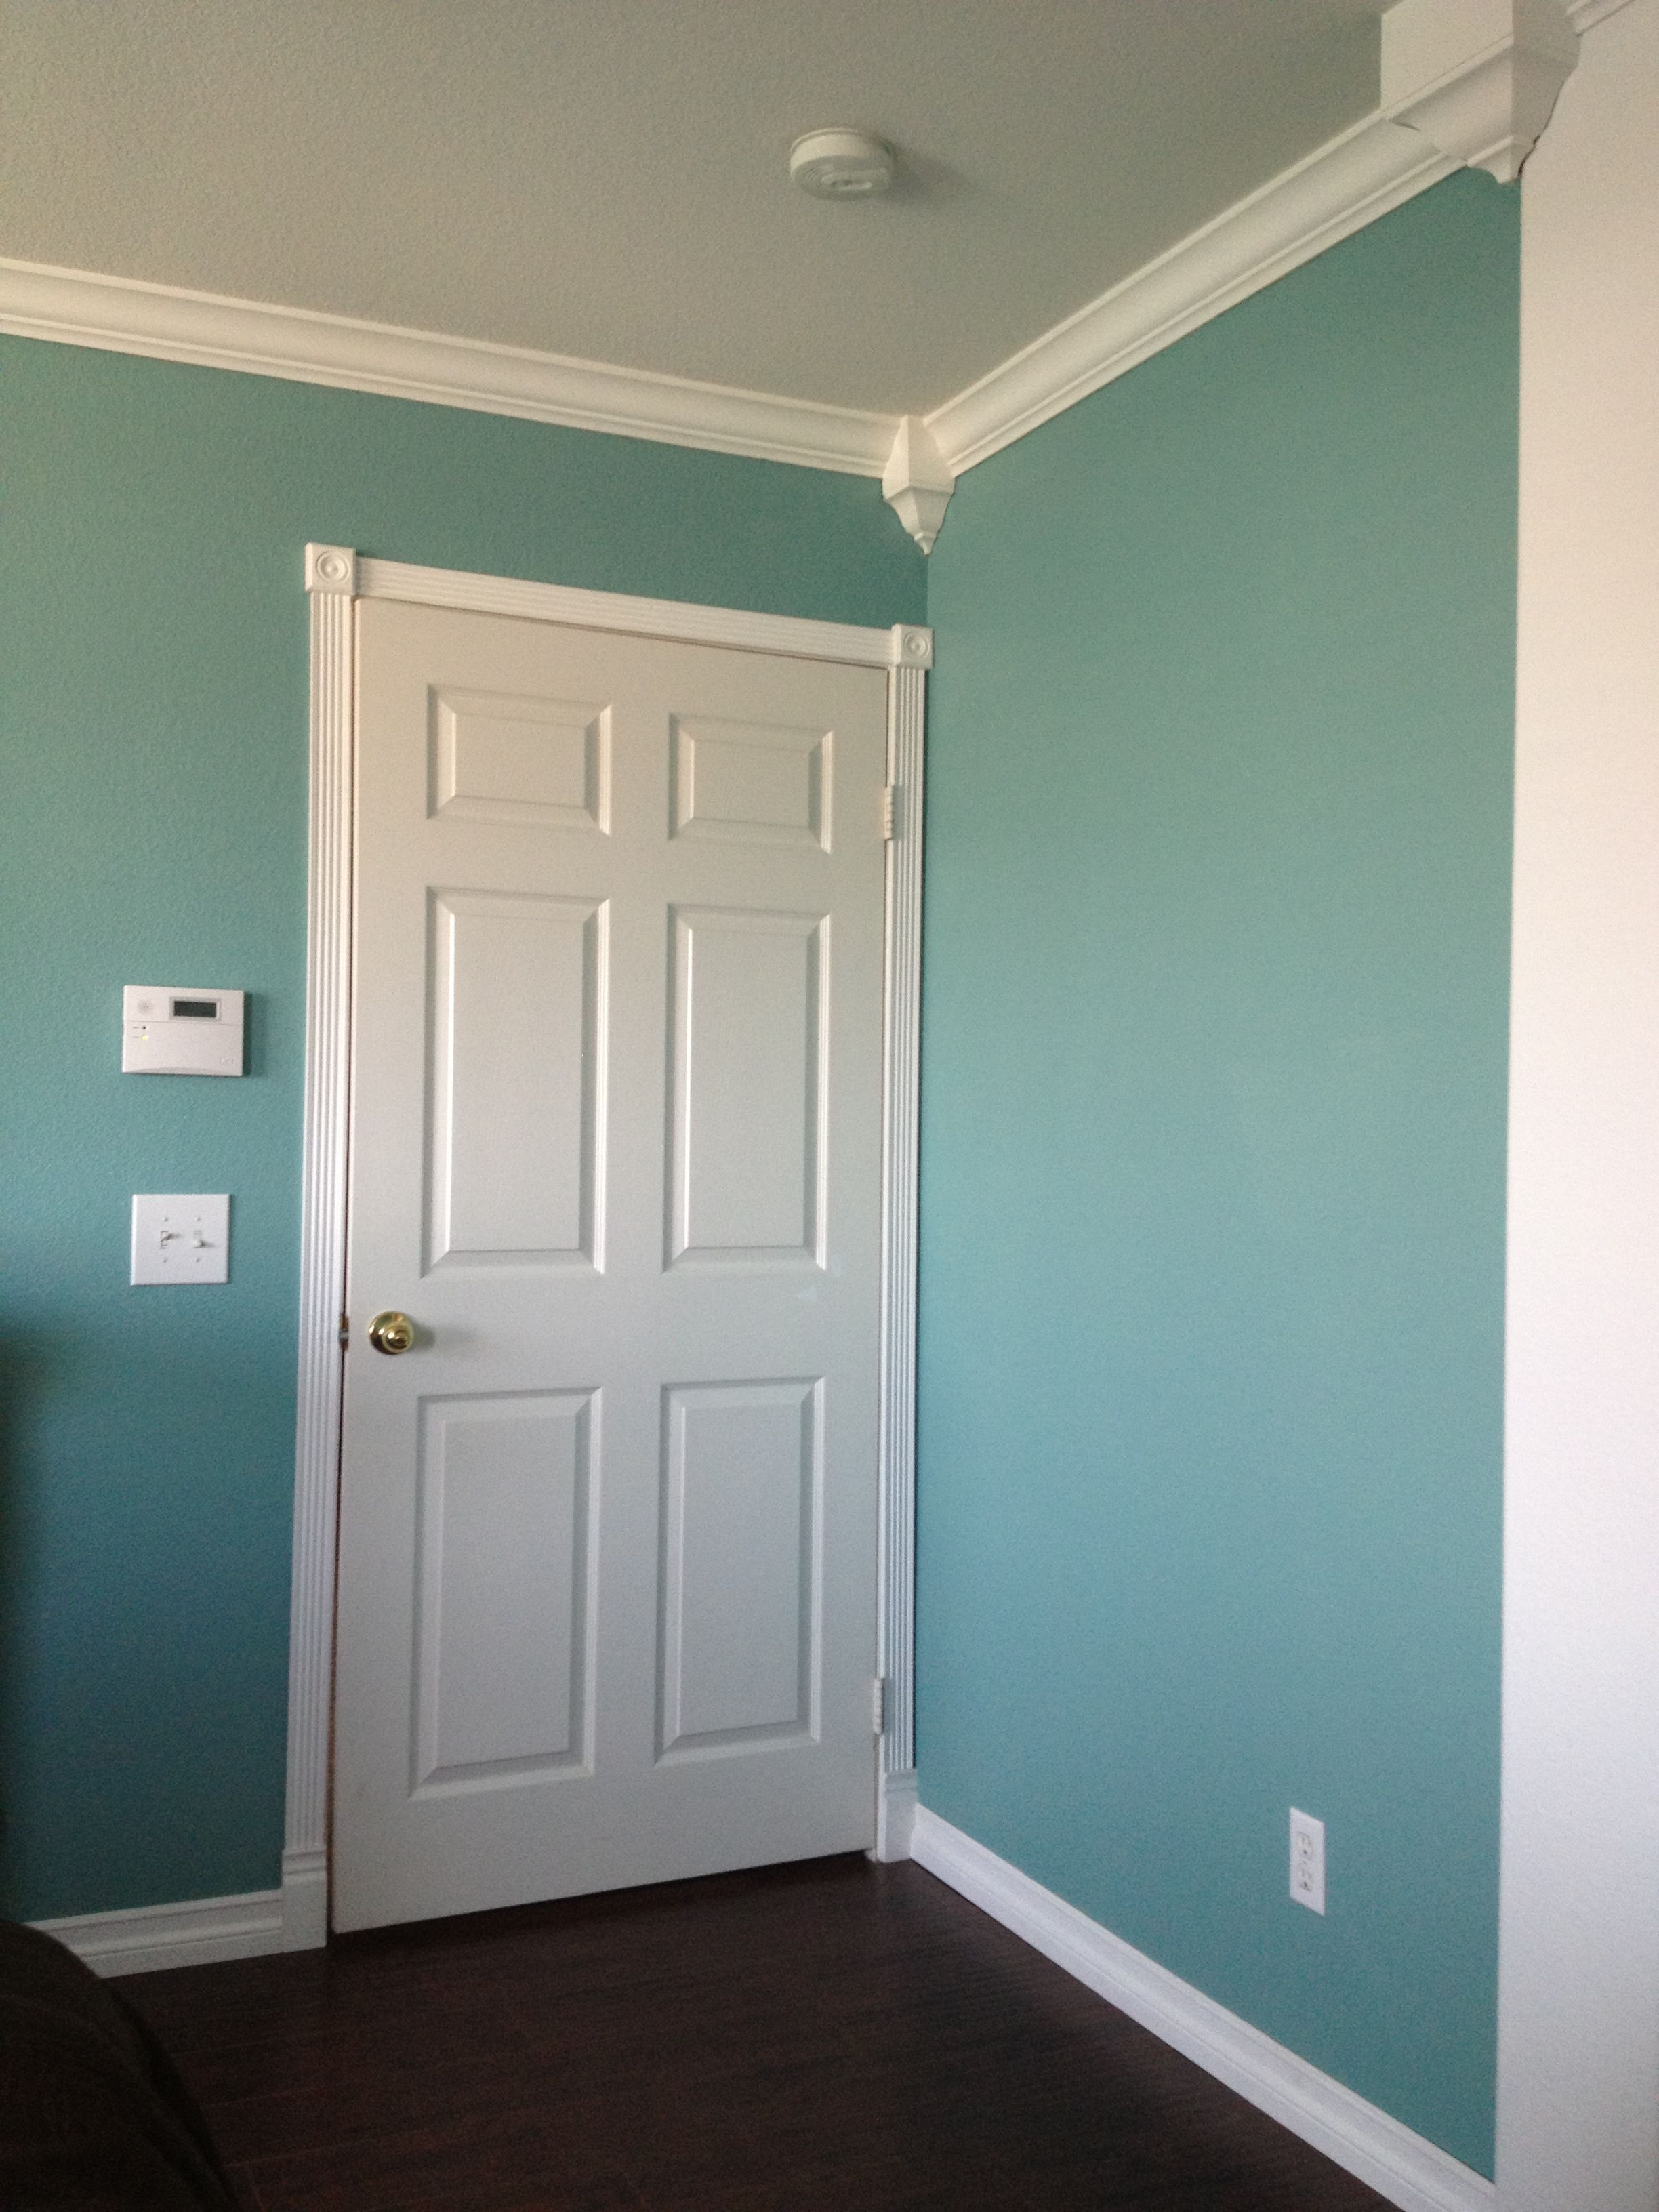 New Paint In Master Bedroom Color Sherwin Williams Drizzle Beach House Pinterest Master